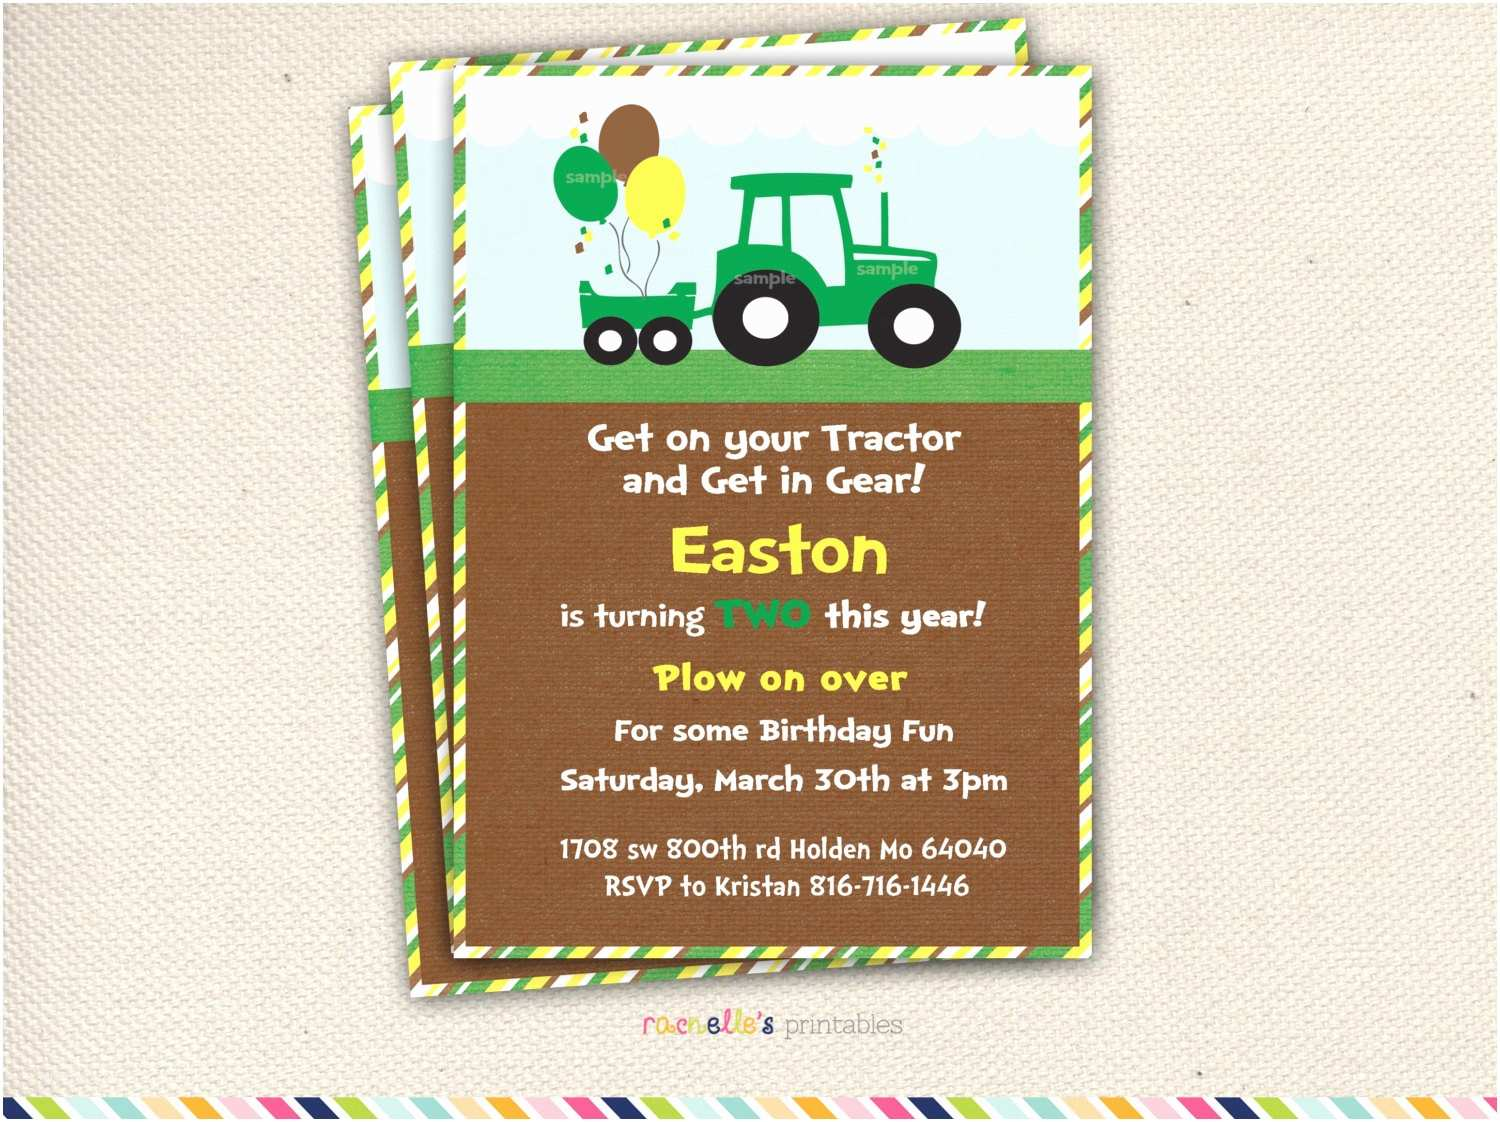 Tractor Birthday Invitations Green Tractor Birthday Party Invite and Thank You Cards